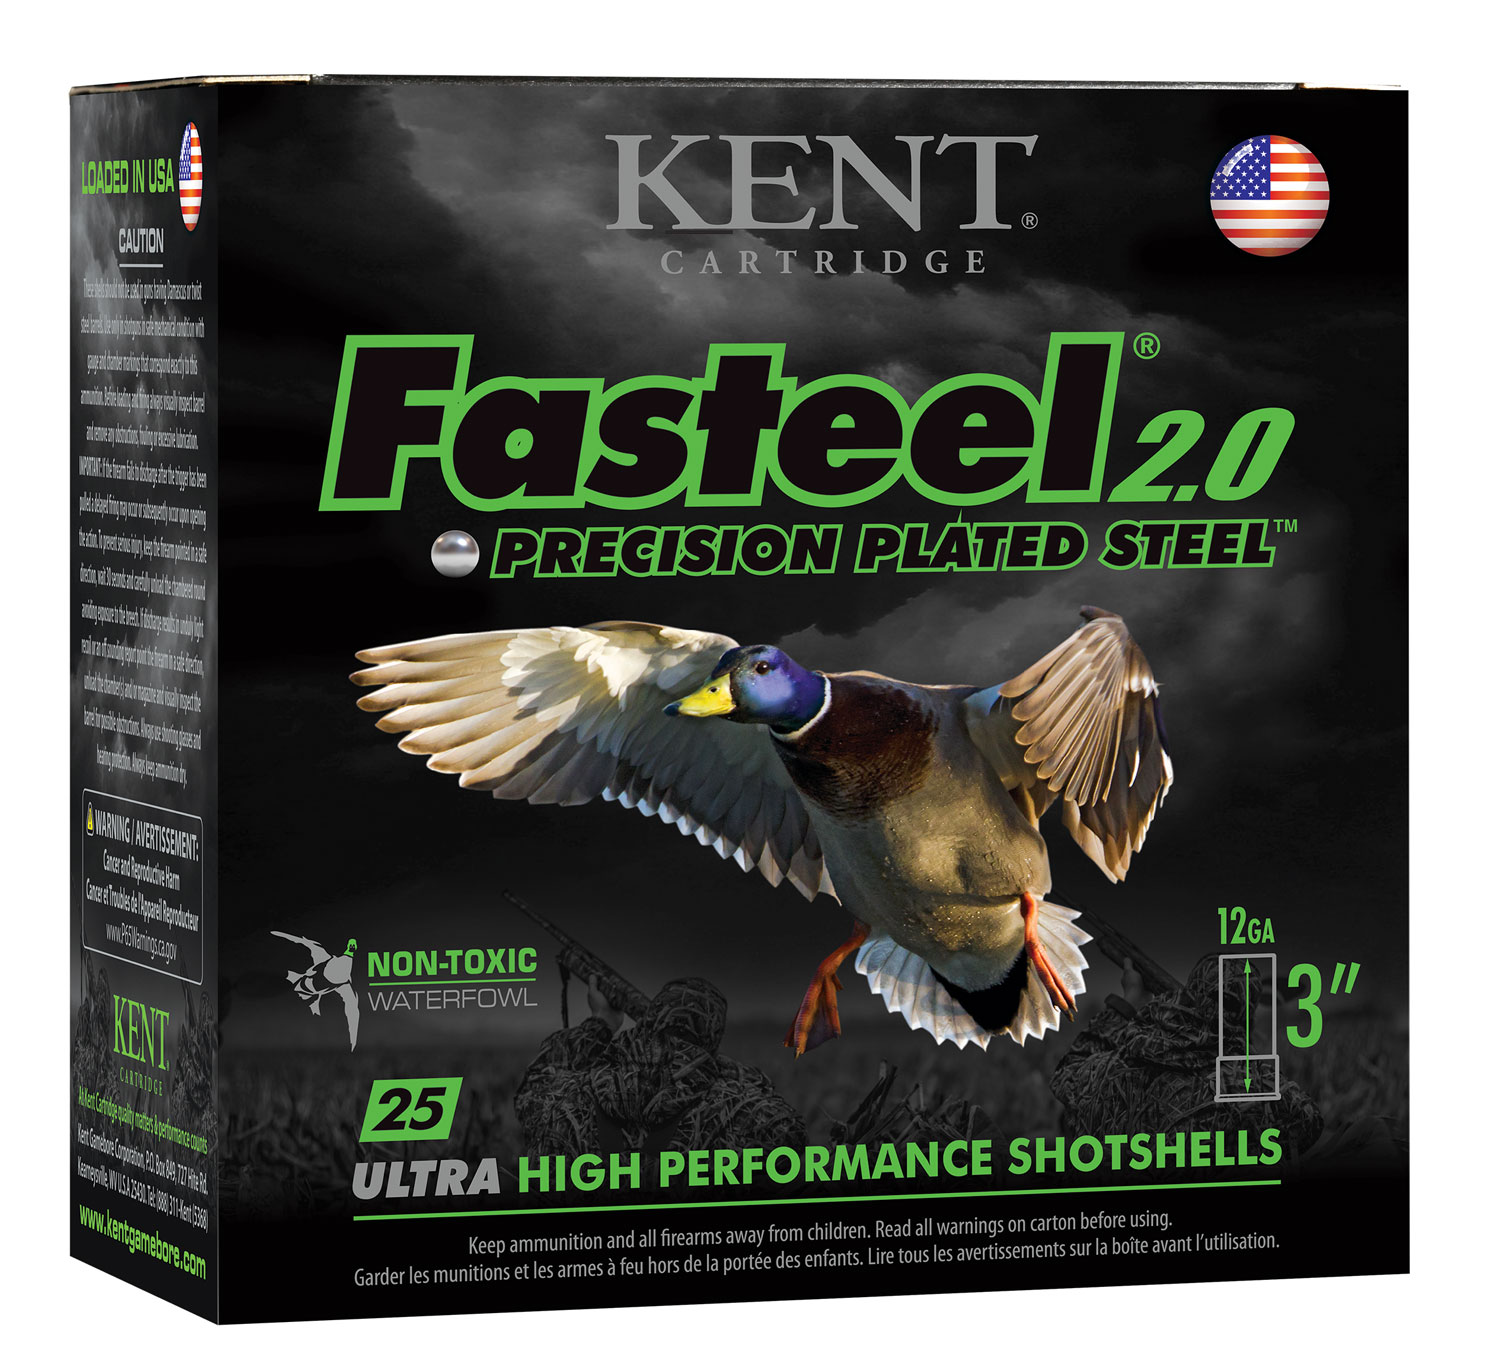 Kent Cartridge K123FS32BB Fasteel 2.0  12 Gauge 3